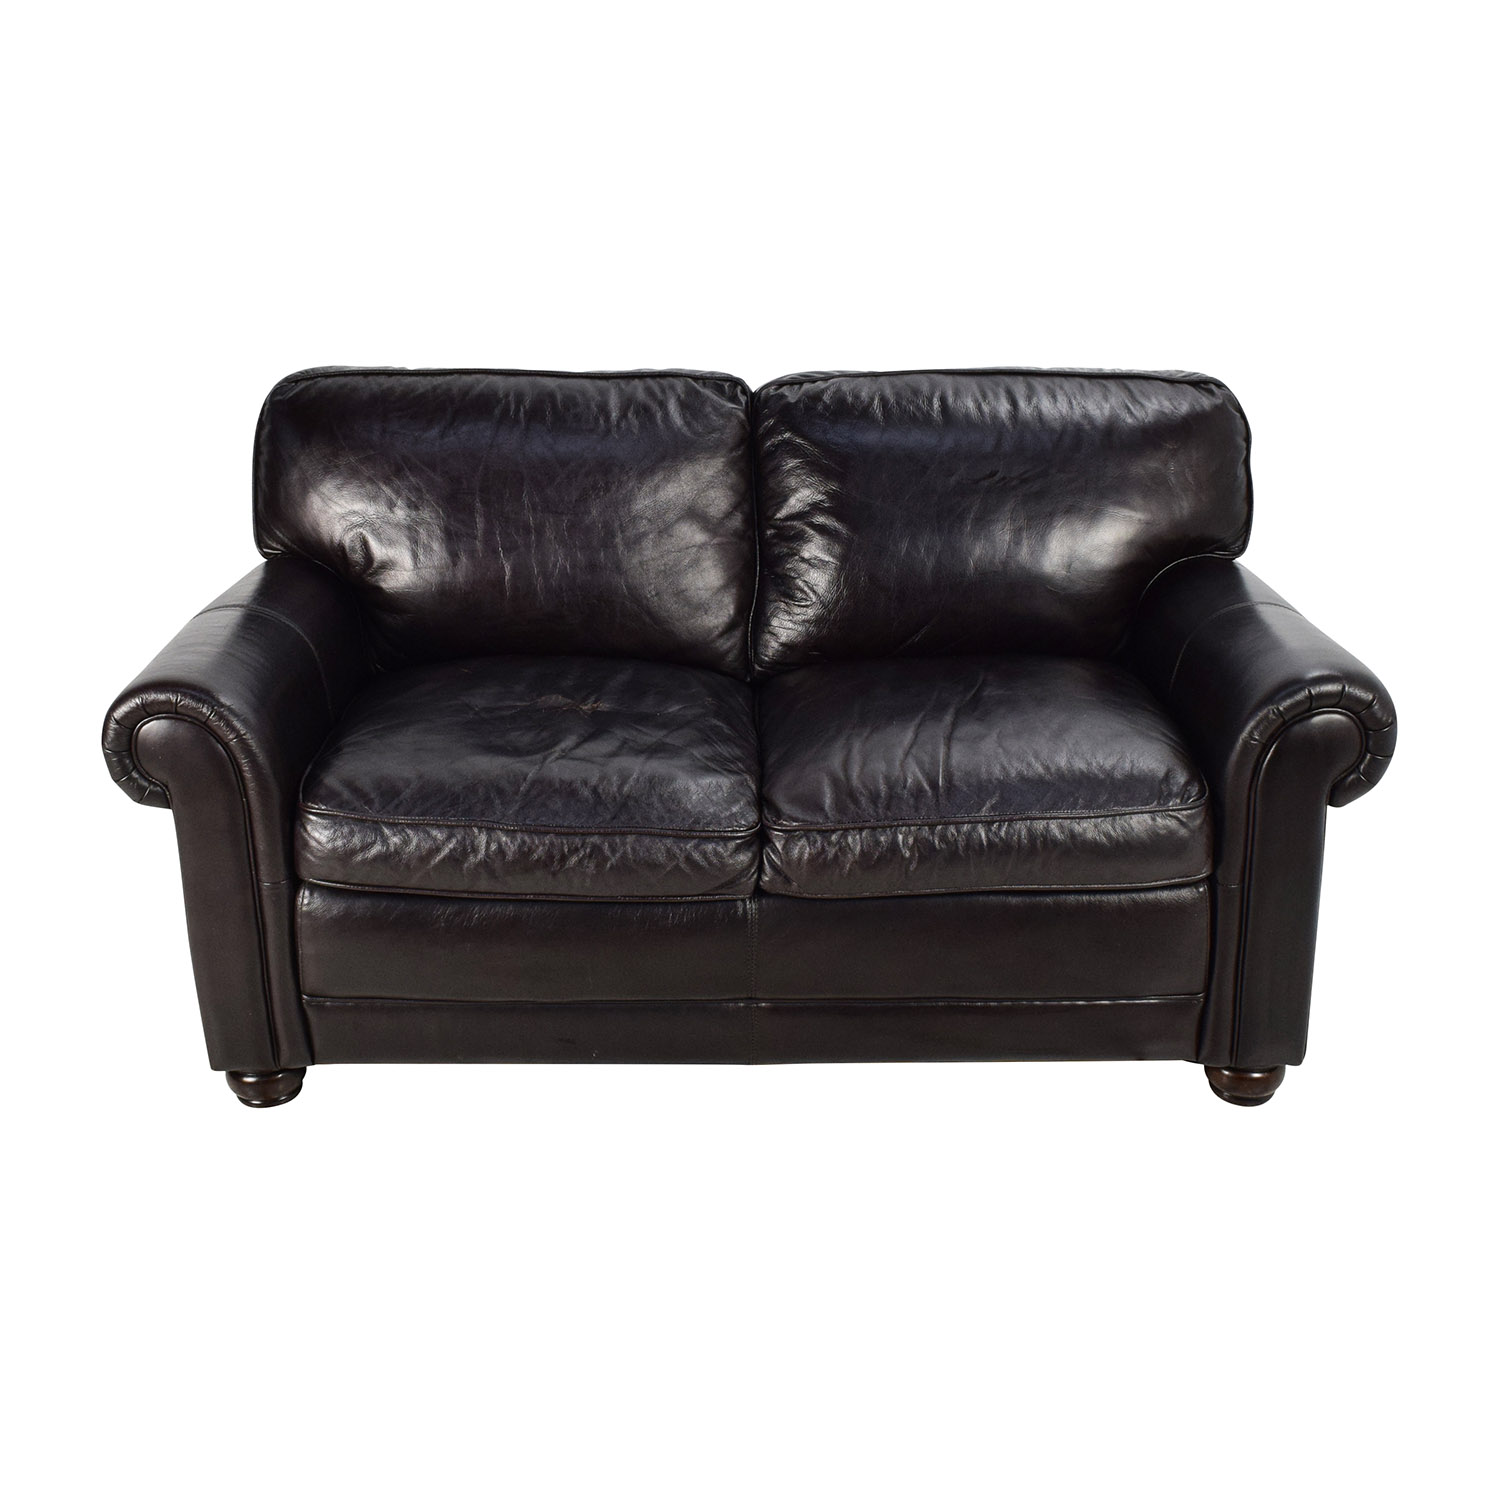 buy Bobs Furniture Leather Dark Brown Sofa Bobs Furniture Classic Sofas